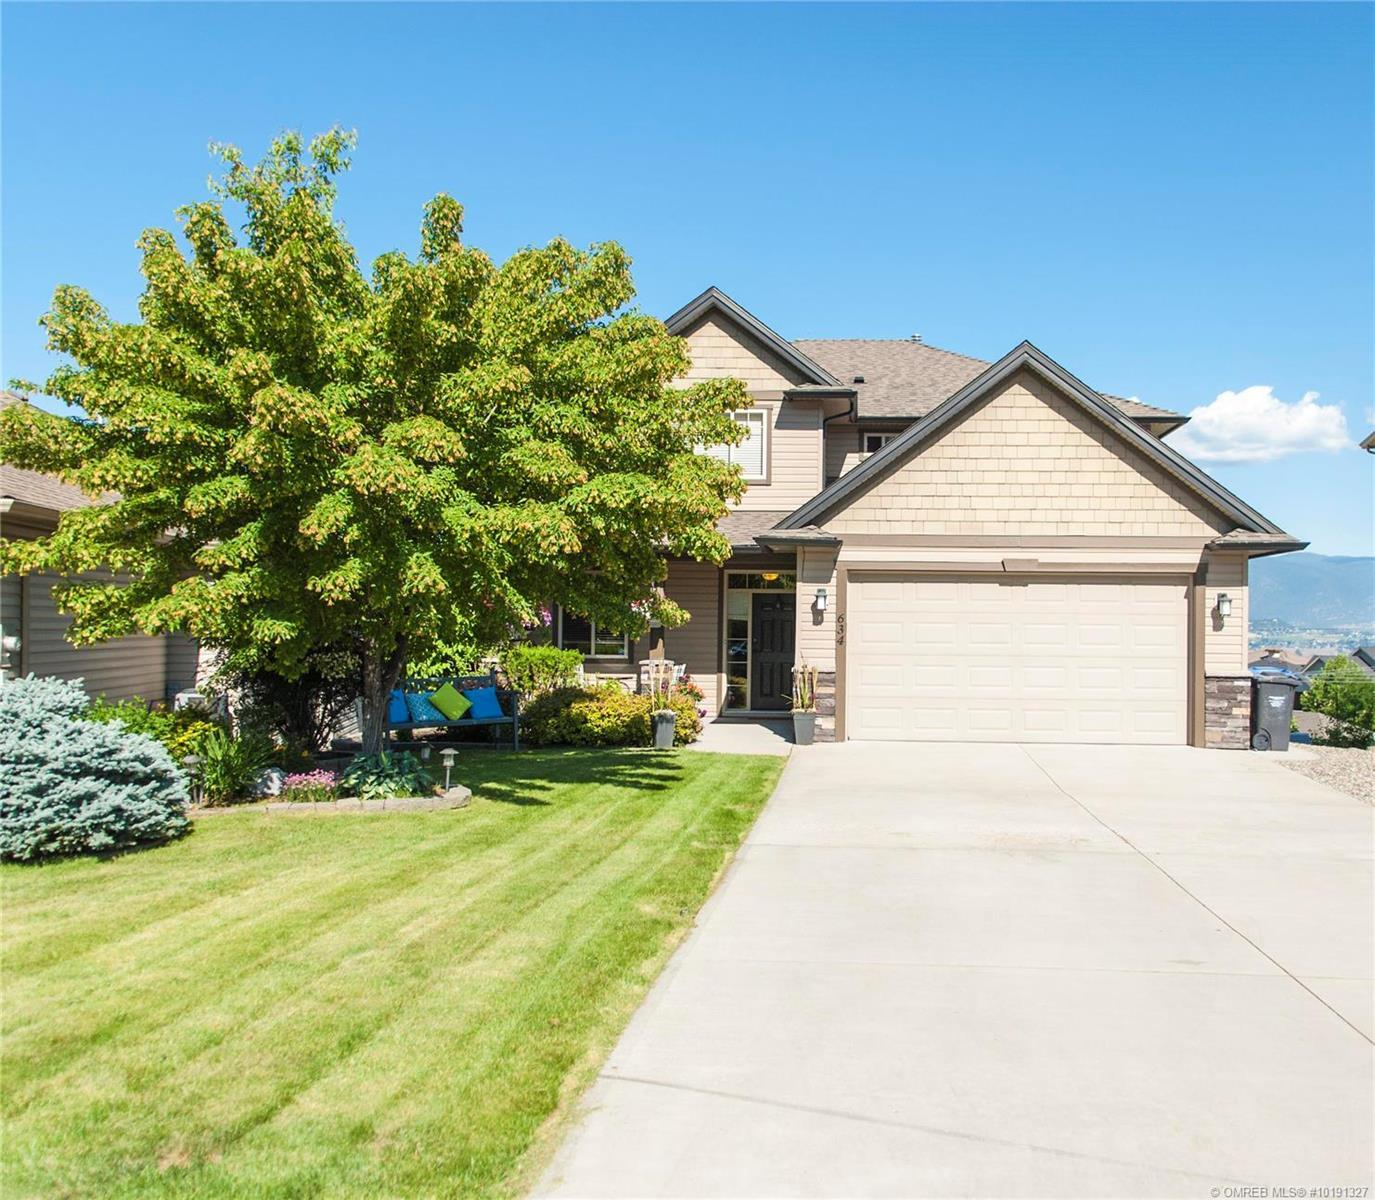 Removed: 634 South Crest Drive, Kelowna, BC - Removed on 2019-10-25 06:51:07